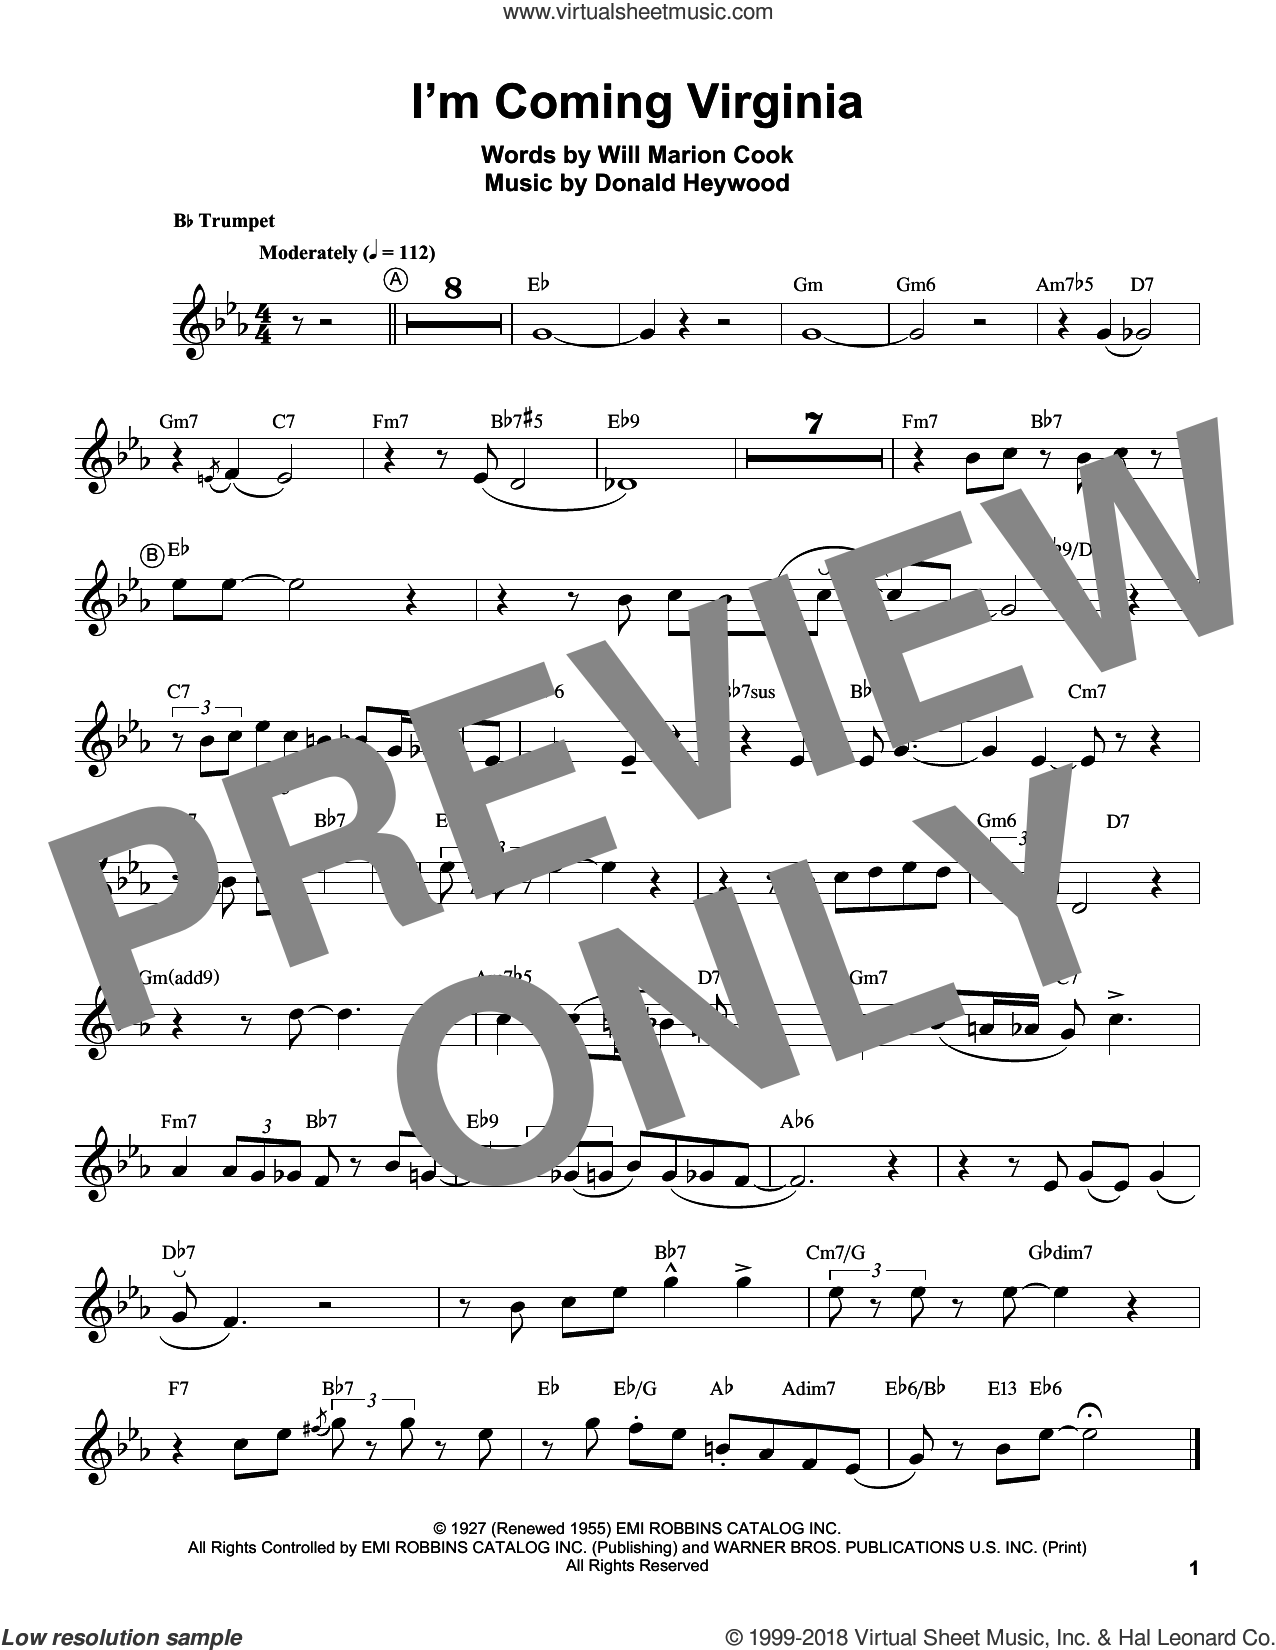 I'm Coming Virginia sheet music for trumpet solo (transcription) by Louis Armstrong, Donald Heywood and Will Marion Cook, intermediate trumpet (transcription)